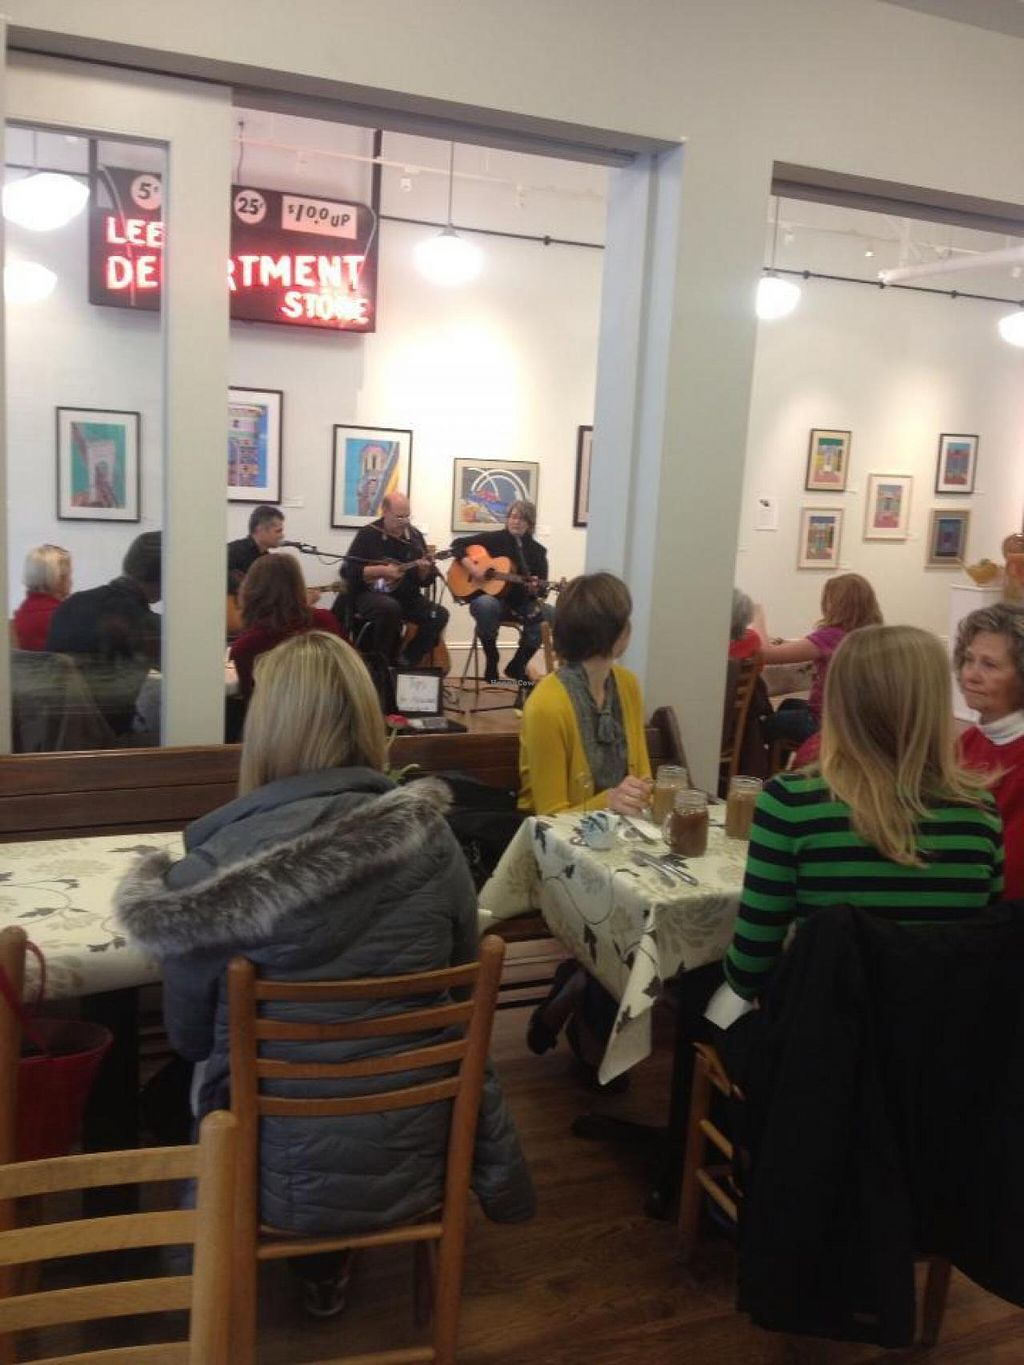 """Photo of Starving Artist Creperie and Cafe  by <a href=""""/members/profile/community"""">community</a> <br/>Starving Artist Creperie and Cafe <br/> May 26, 2014  - <a href='/contact/abuse/image/47628/70782'>Report</a>"""